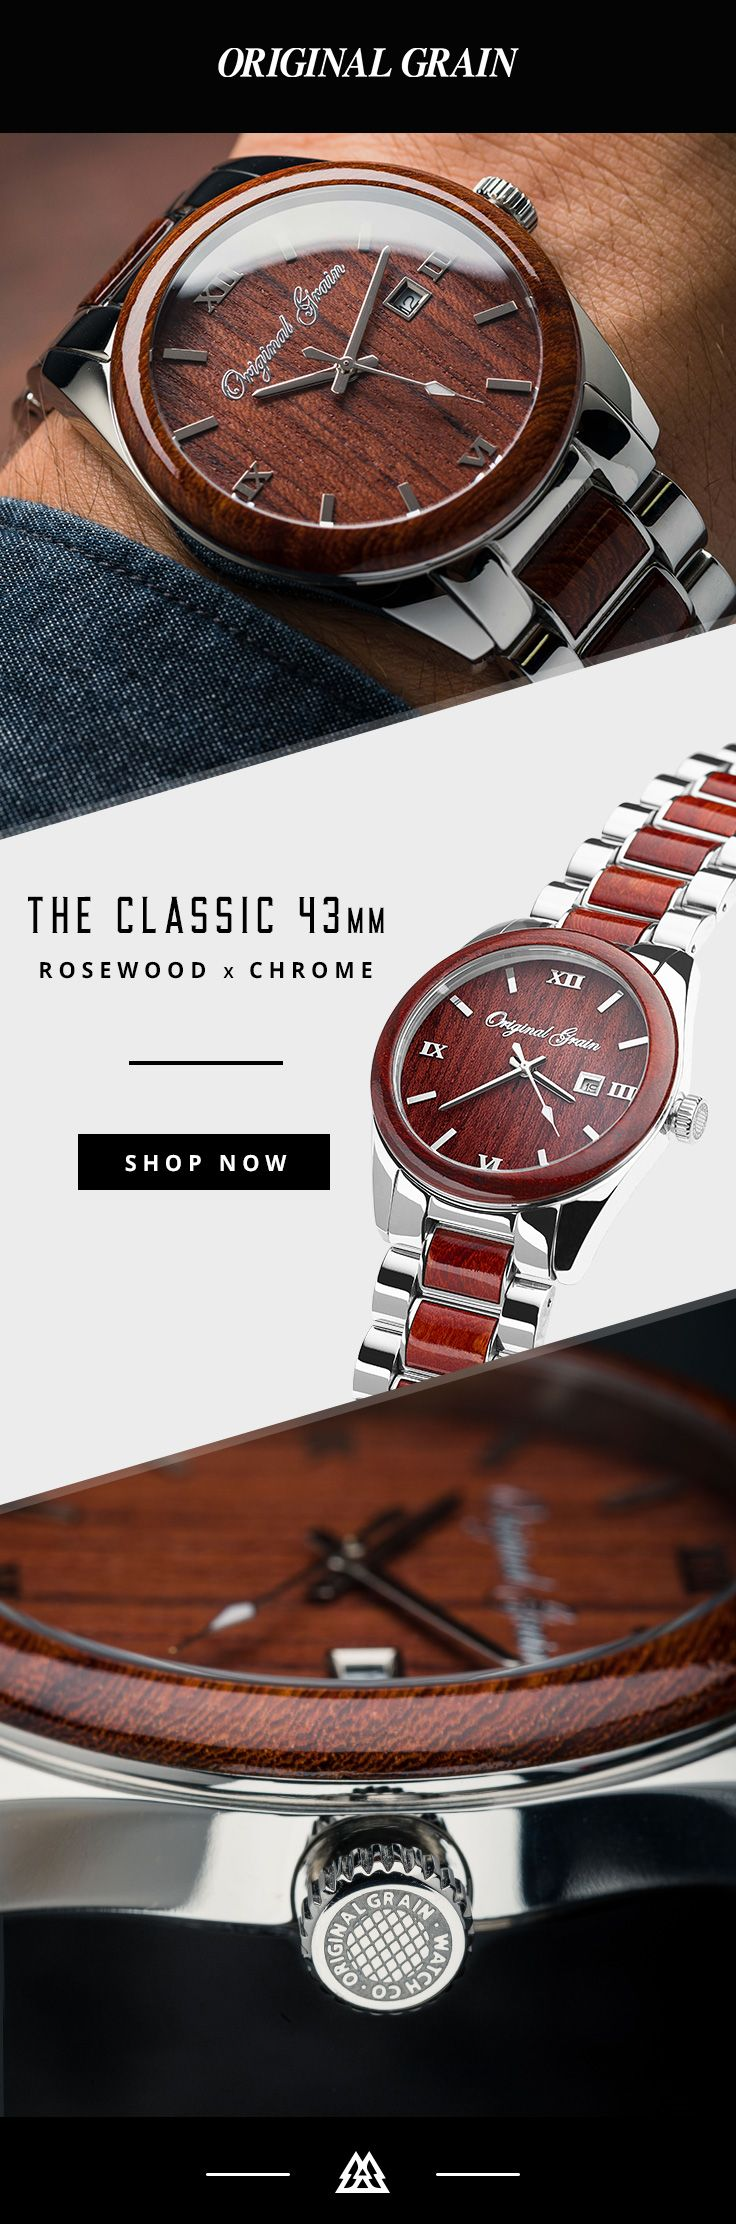 Watches Sale! Up to 75% OFF! Shop at Stylizio for women's and men's designer handbags, luxury sunglasses, watches, jewelry, purses, wallets, clothes, underwear